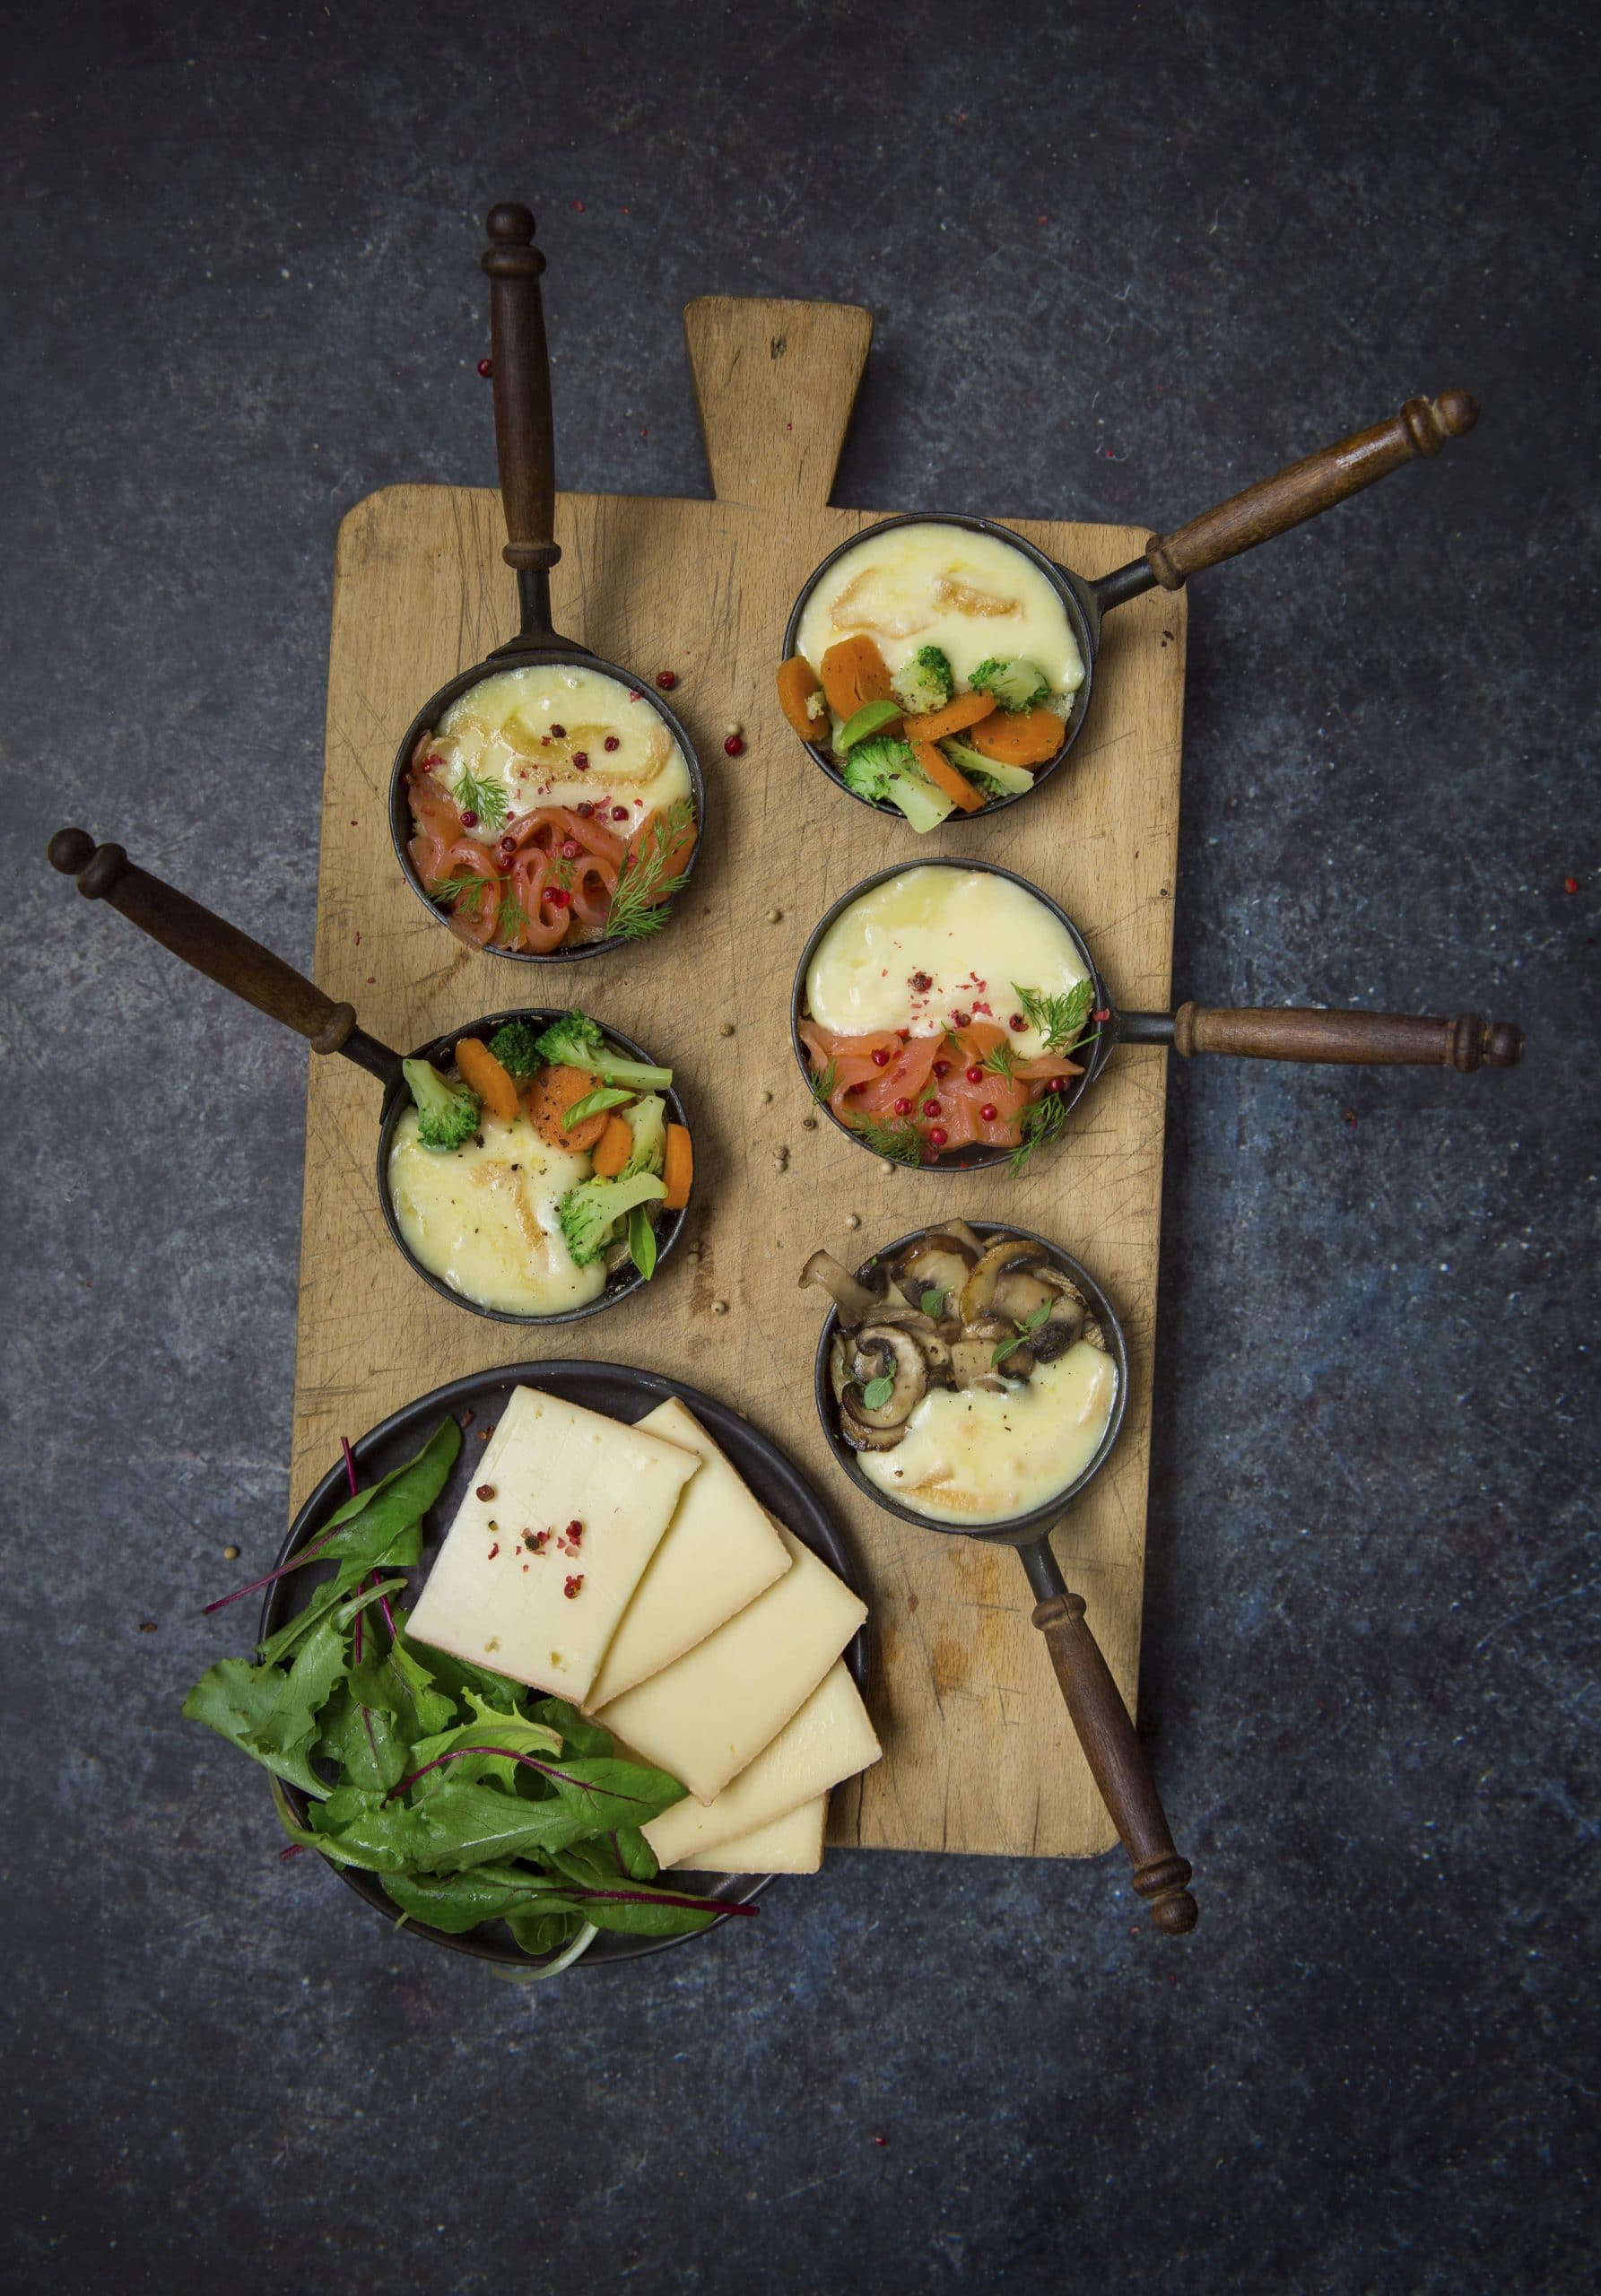 Raclette cheese recipe